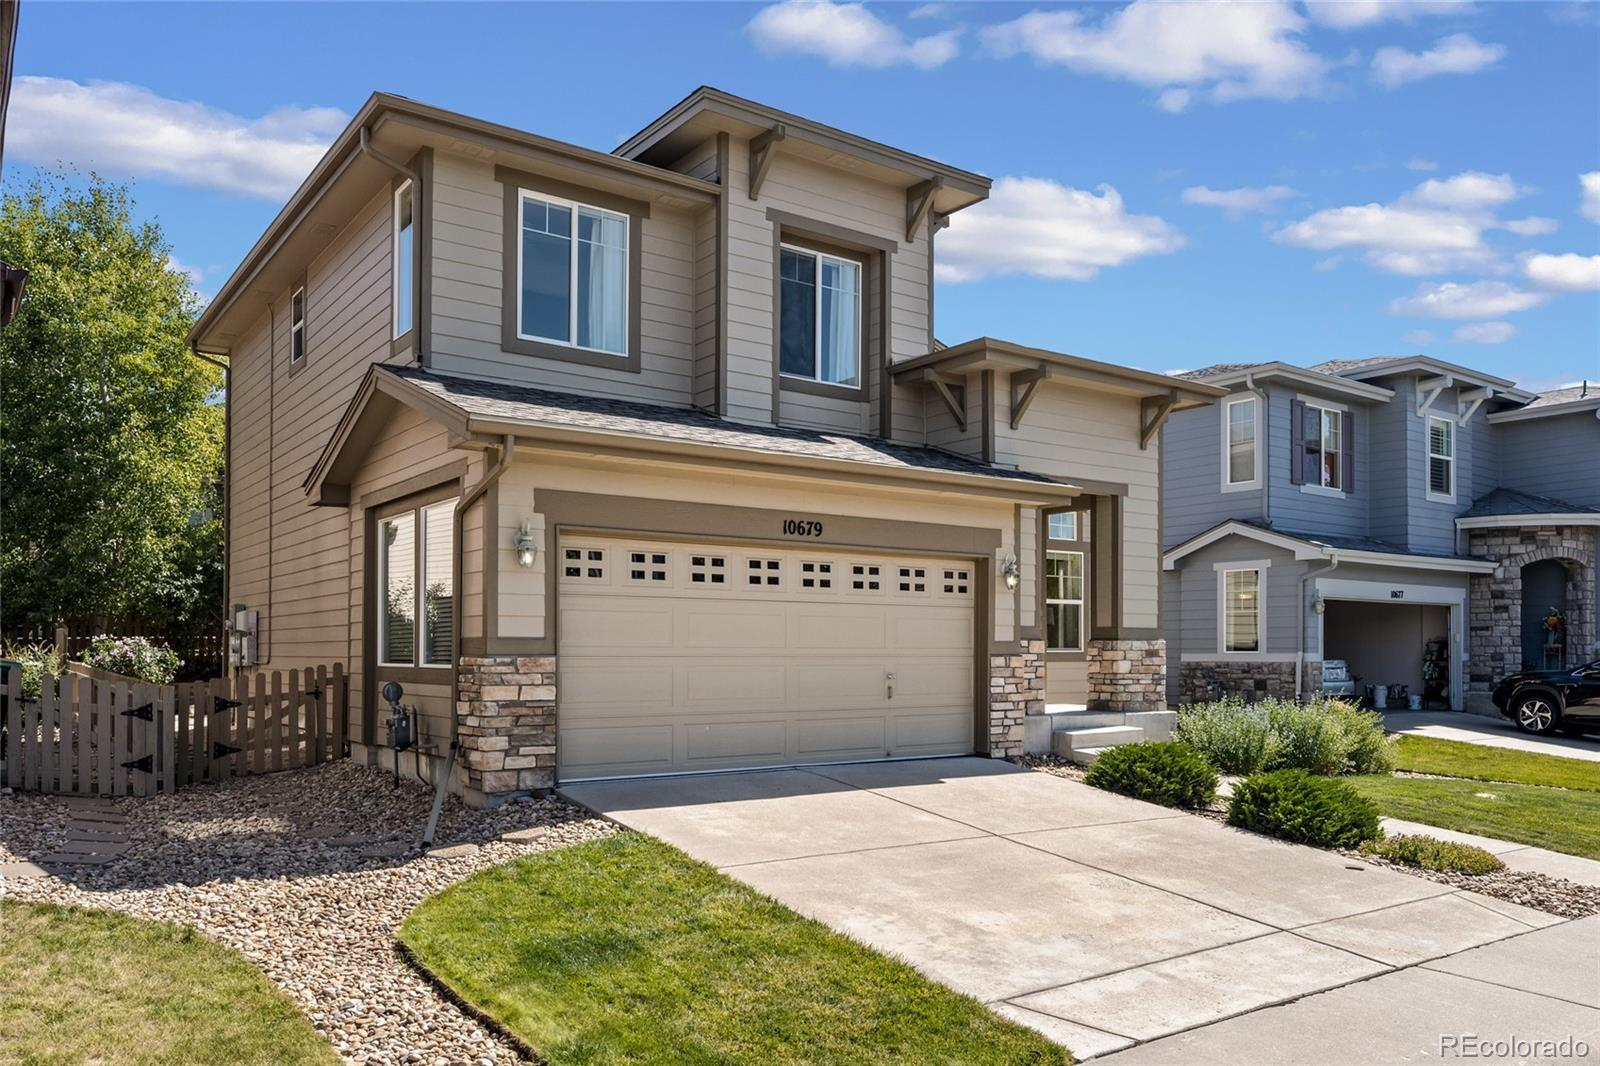 10679 Jewelberry Circle, Highlands Ranch, CO 80130 - #: 3177702